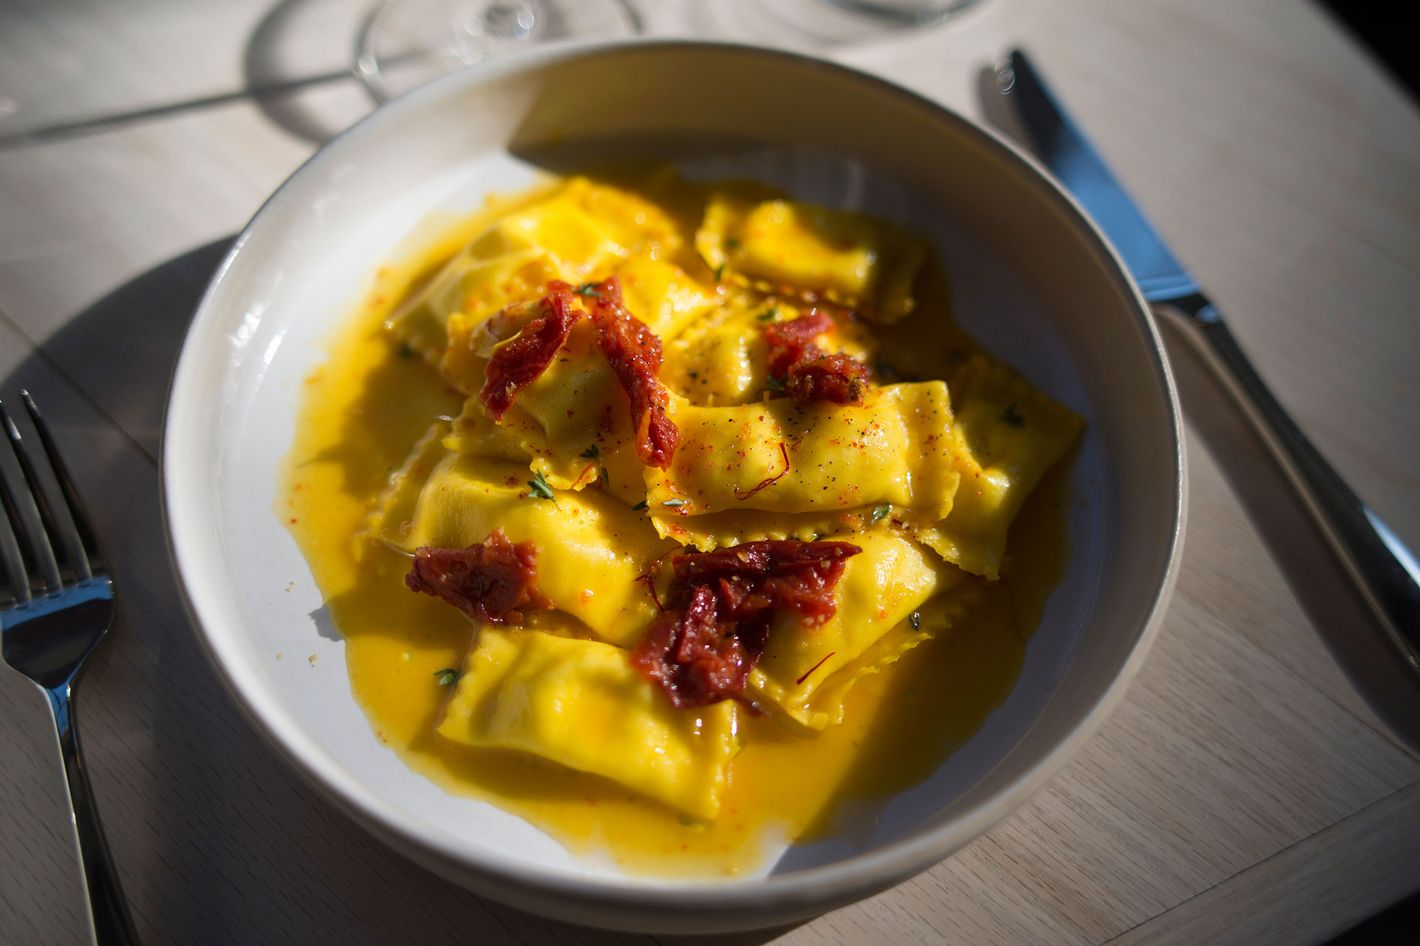 Sheep's-milk-cheese-filled pasta with saffron, tomato sugo, and honey.